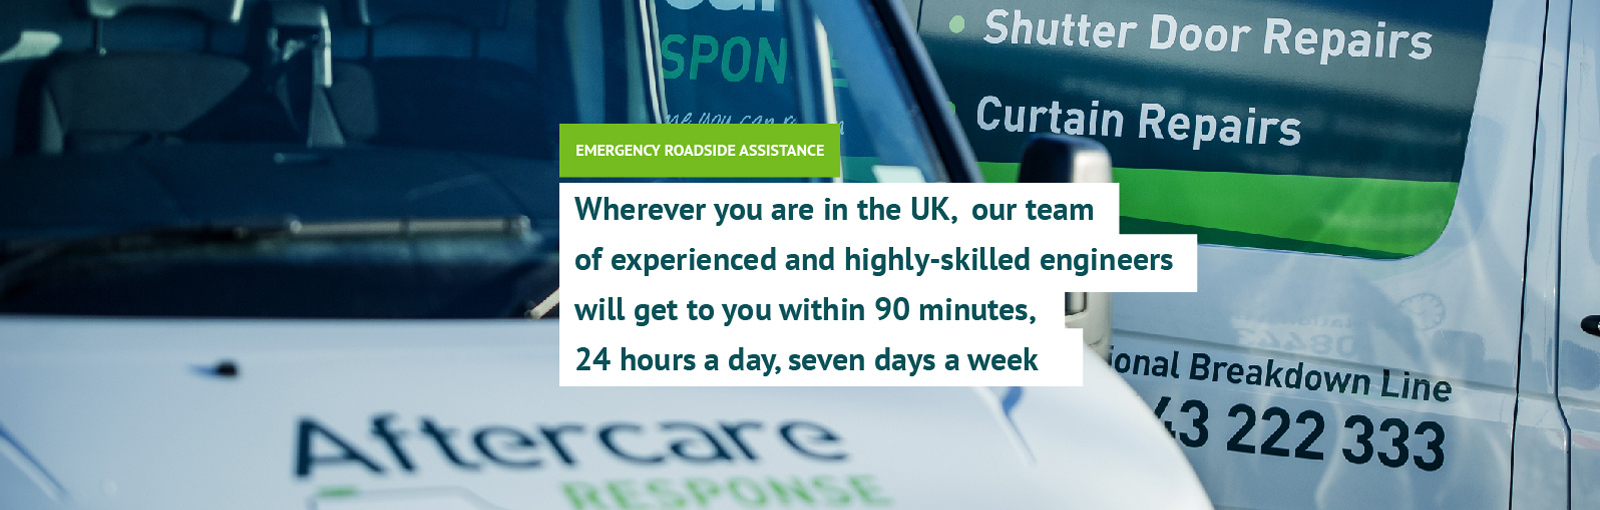 Wherever you are in the UK,  our team of experienced and highly-skilled engineers will get to you within 90 minutes, 24 hours a day, seven days a week